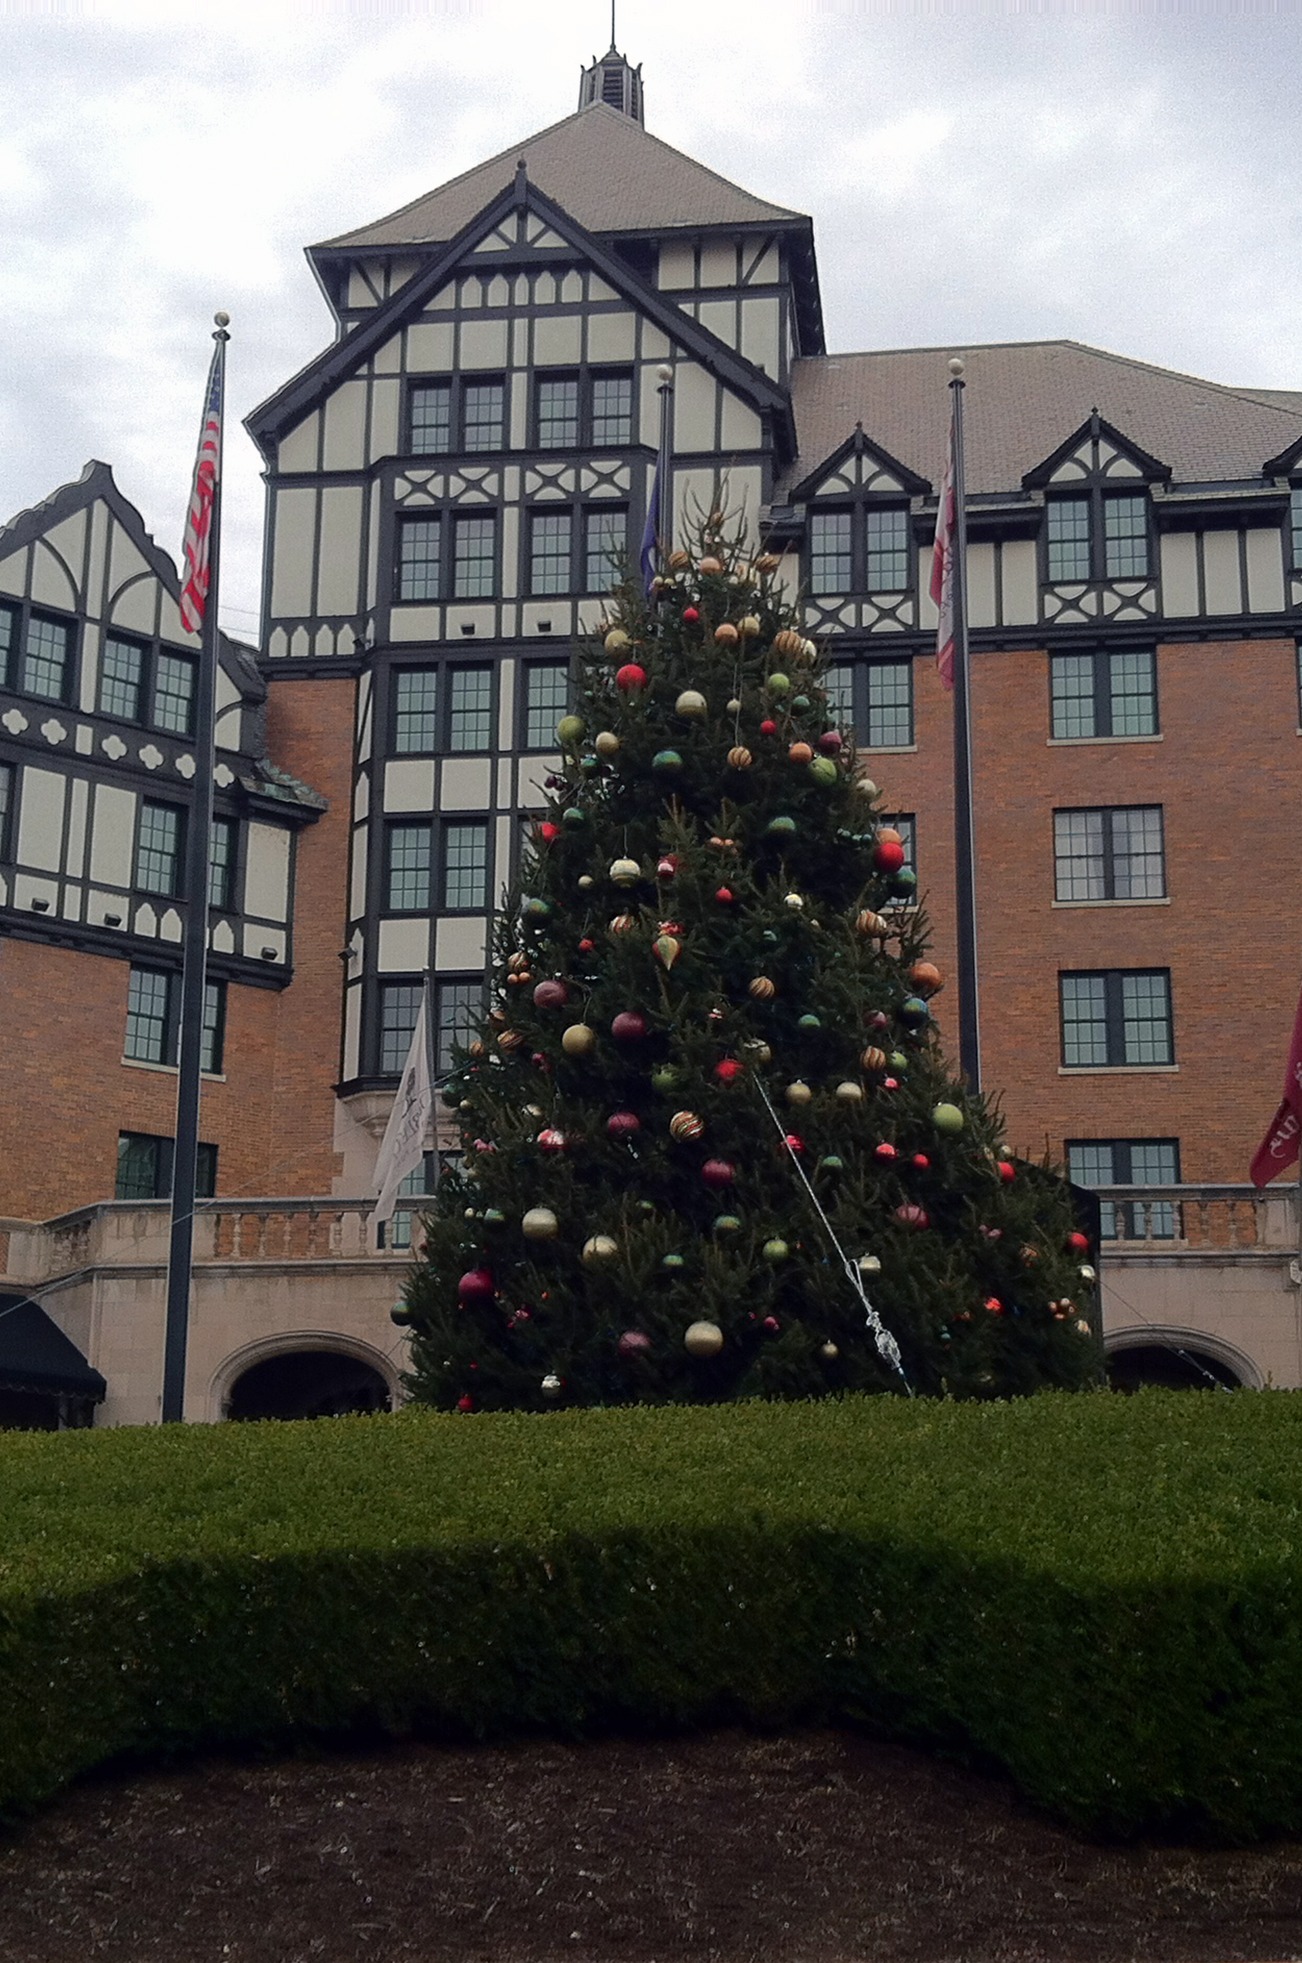 A decorated tree is displayed outside the hotel.